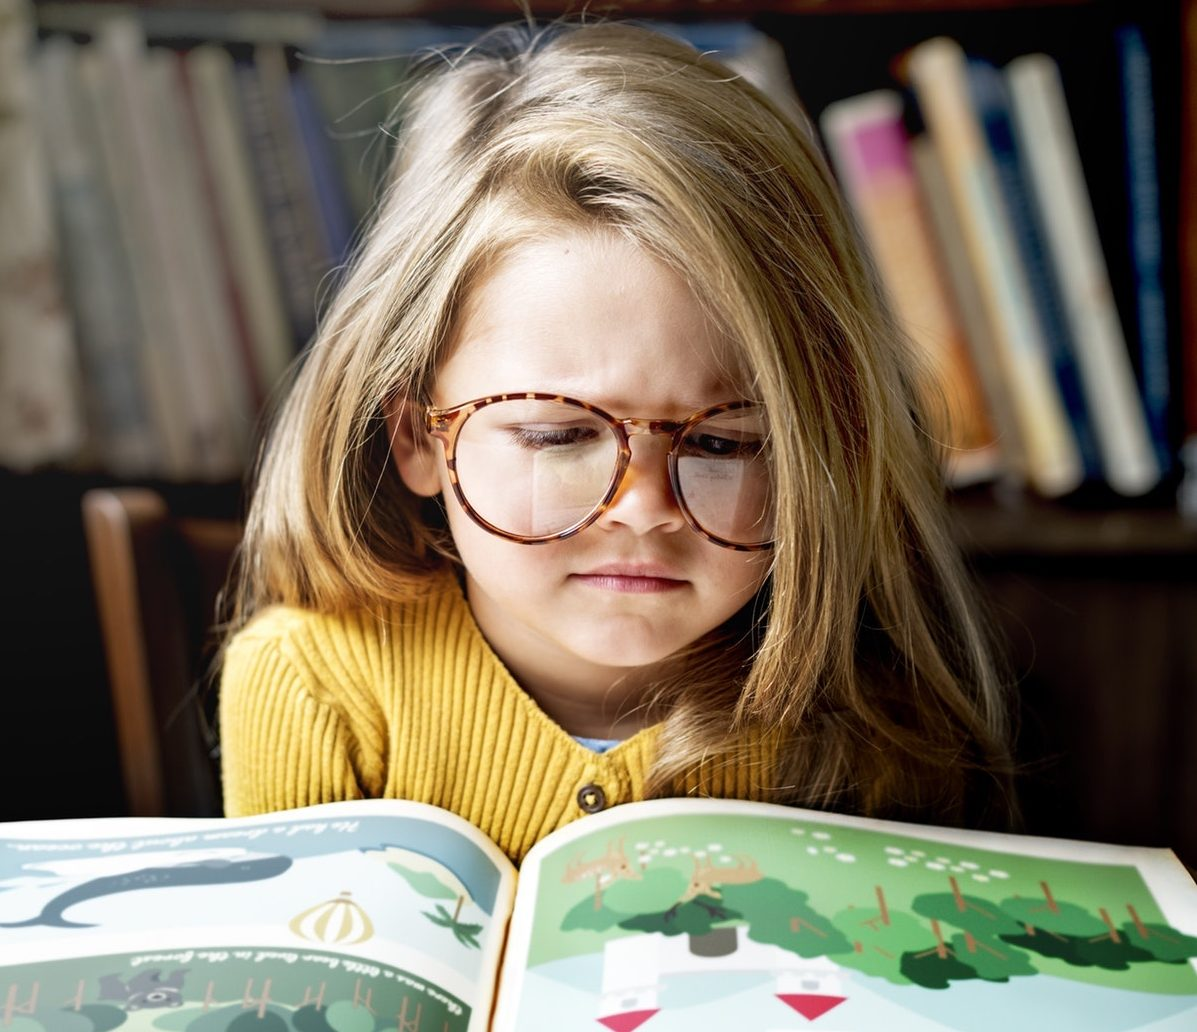 girl with glasses and yellow top reading story book